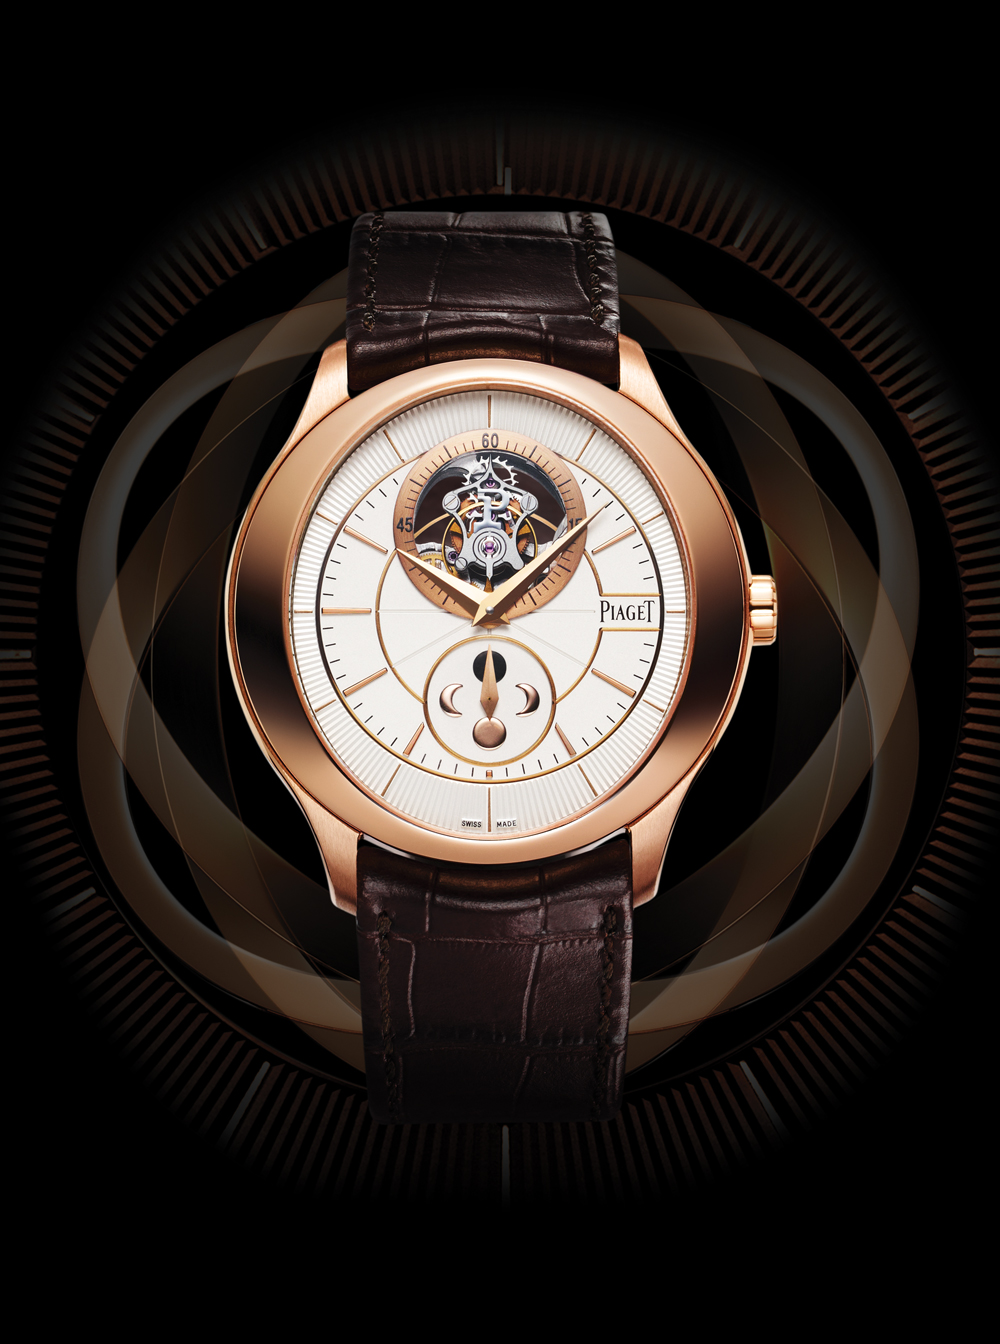 The Piaget Gouverneur Tourbillon is powered by the Piaget caliber 642P manual-winding movement; flying tourbillon and moon phase with 40-hour power reserve.